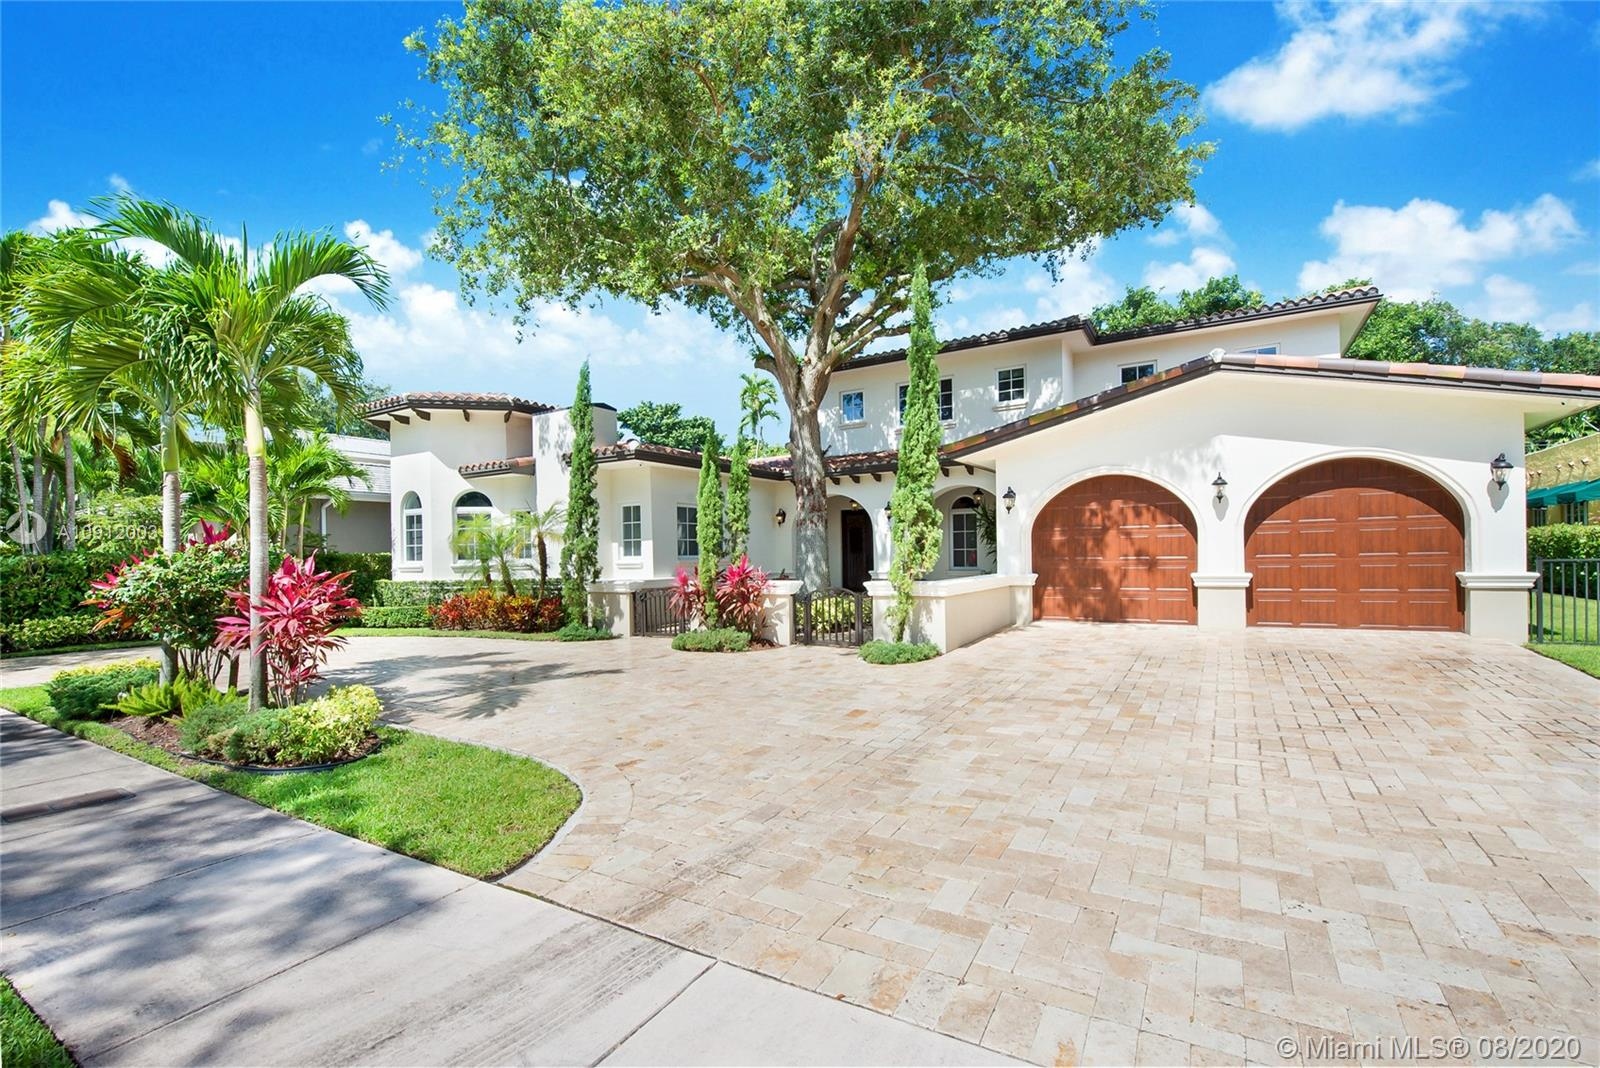 Spectacular one of a kind Home in the Heart of the Gables. Rare Opportunity to own this Gem on a huge triple lot. House boasts a beautiful courtyard entrance centered around a grand oak, circular driveway,2 car garage.Features 6 bedrooms, 6 and a half bath including a large downstairs den/office/media w/fireplace. Marble floors throughout & wood floors in bedrooms. Master suite upstairs w/2 large walk in closets, spacious bath suite & covered terrace overlooking the pool. Kitchen equip w/ Top of the line appliances include Wolf & Miele, oversized island & quartz countertops. Includes a Crestron sound system throughout, impact windows & doors, and grand ceilings. Formal dining room, family & living room that open out to covered terrace & pool. Built in 2015